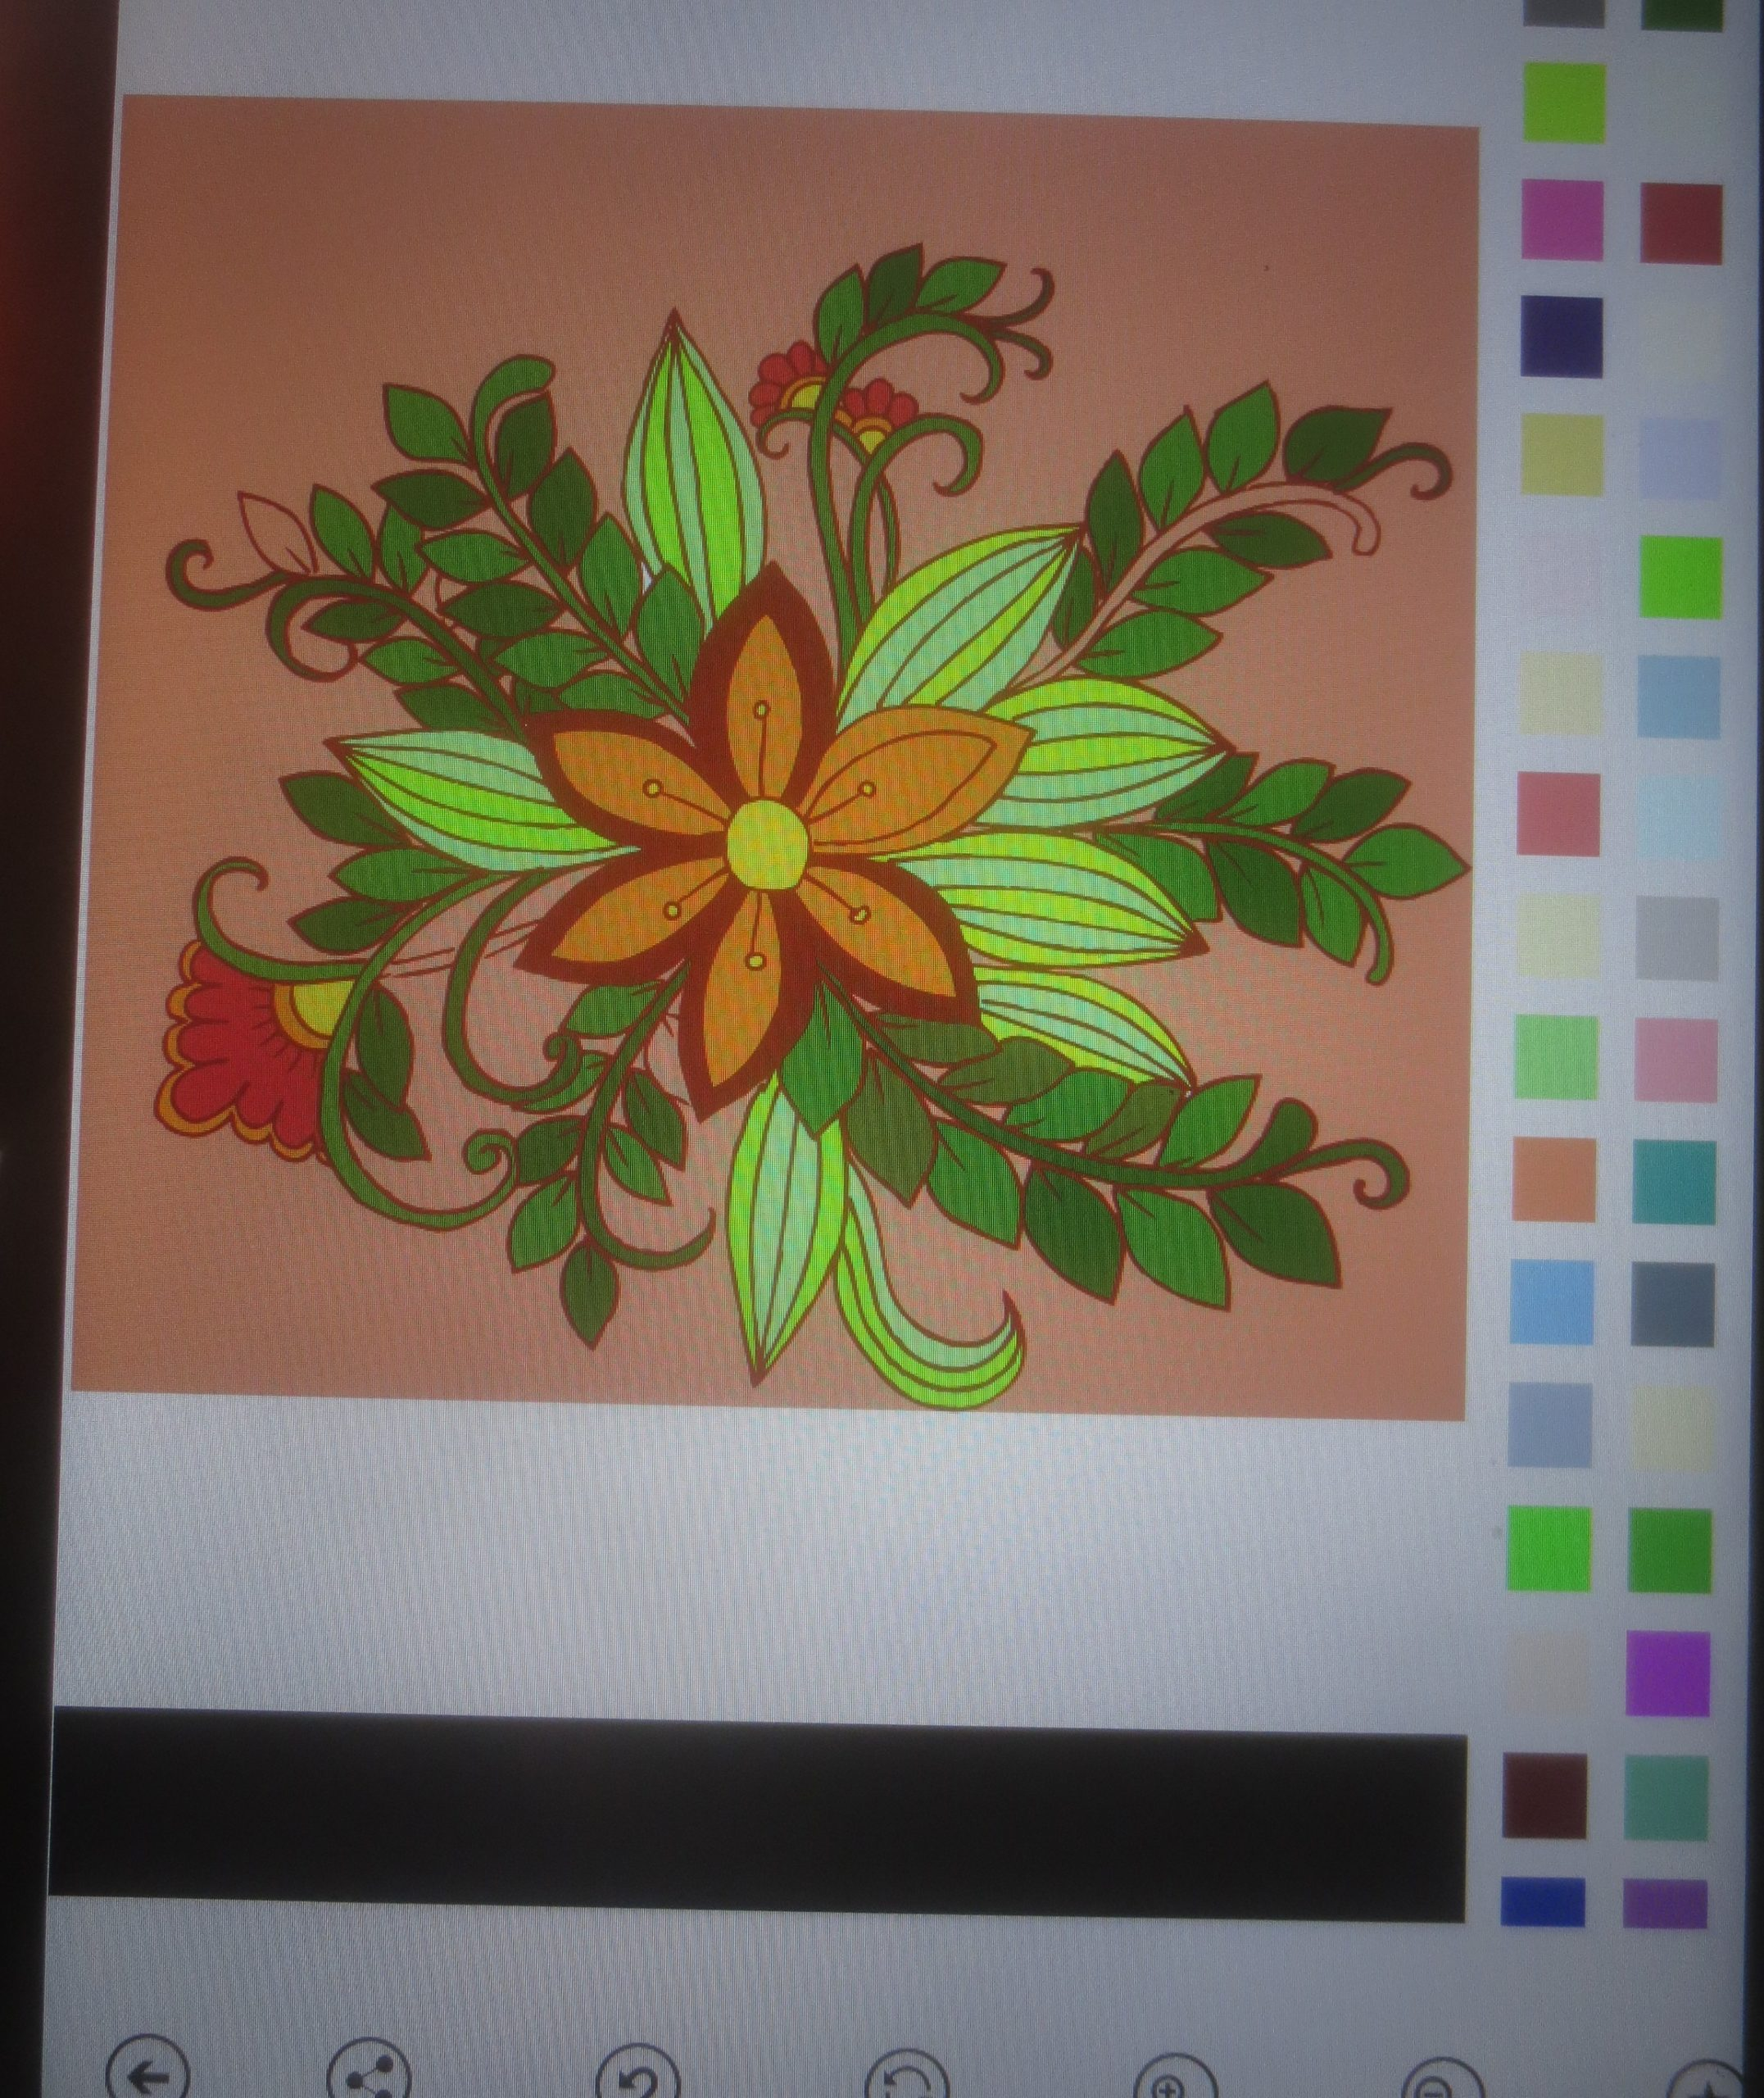 picture of a coloring book app on a tablet